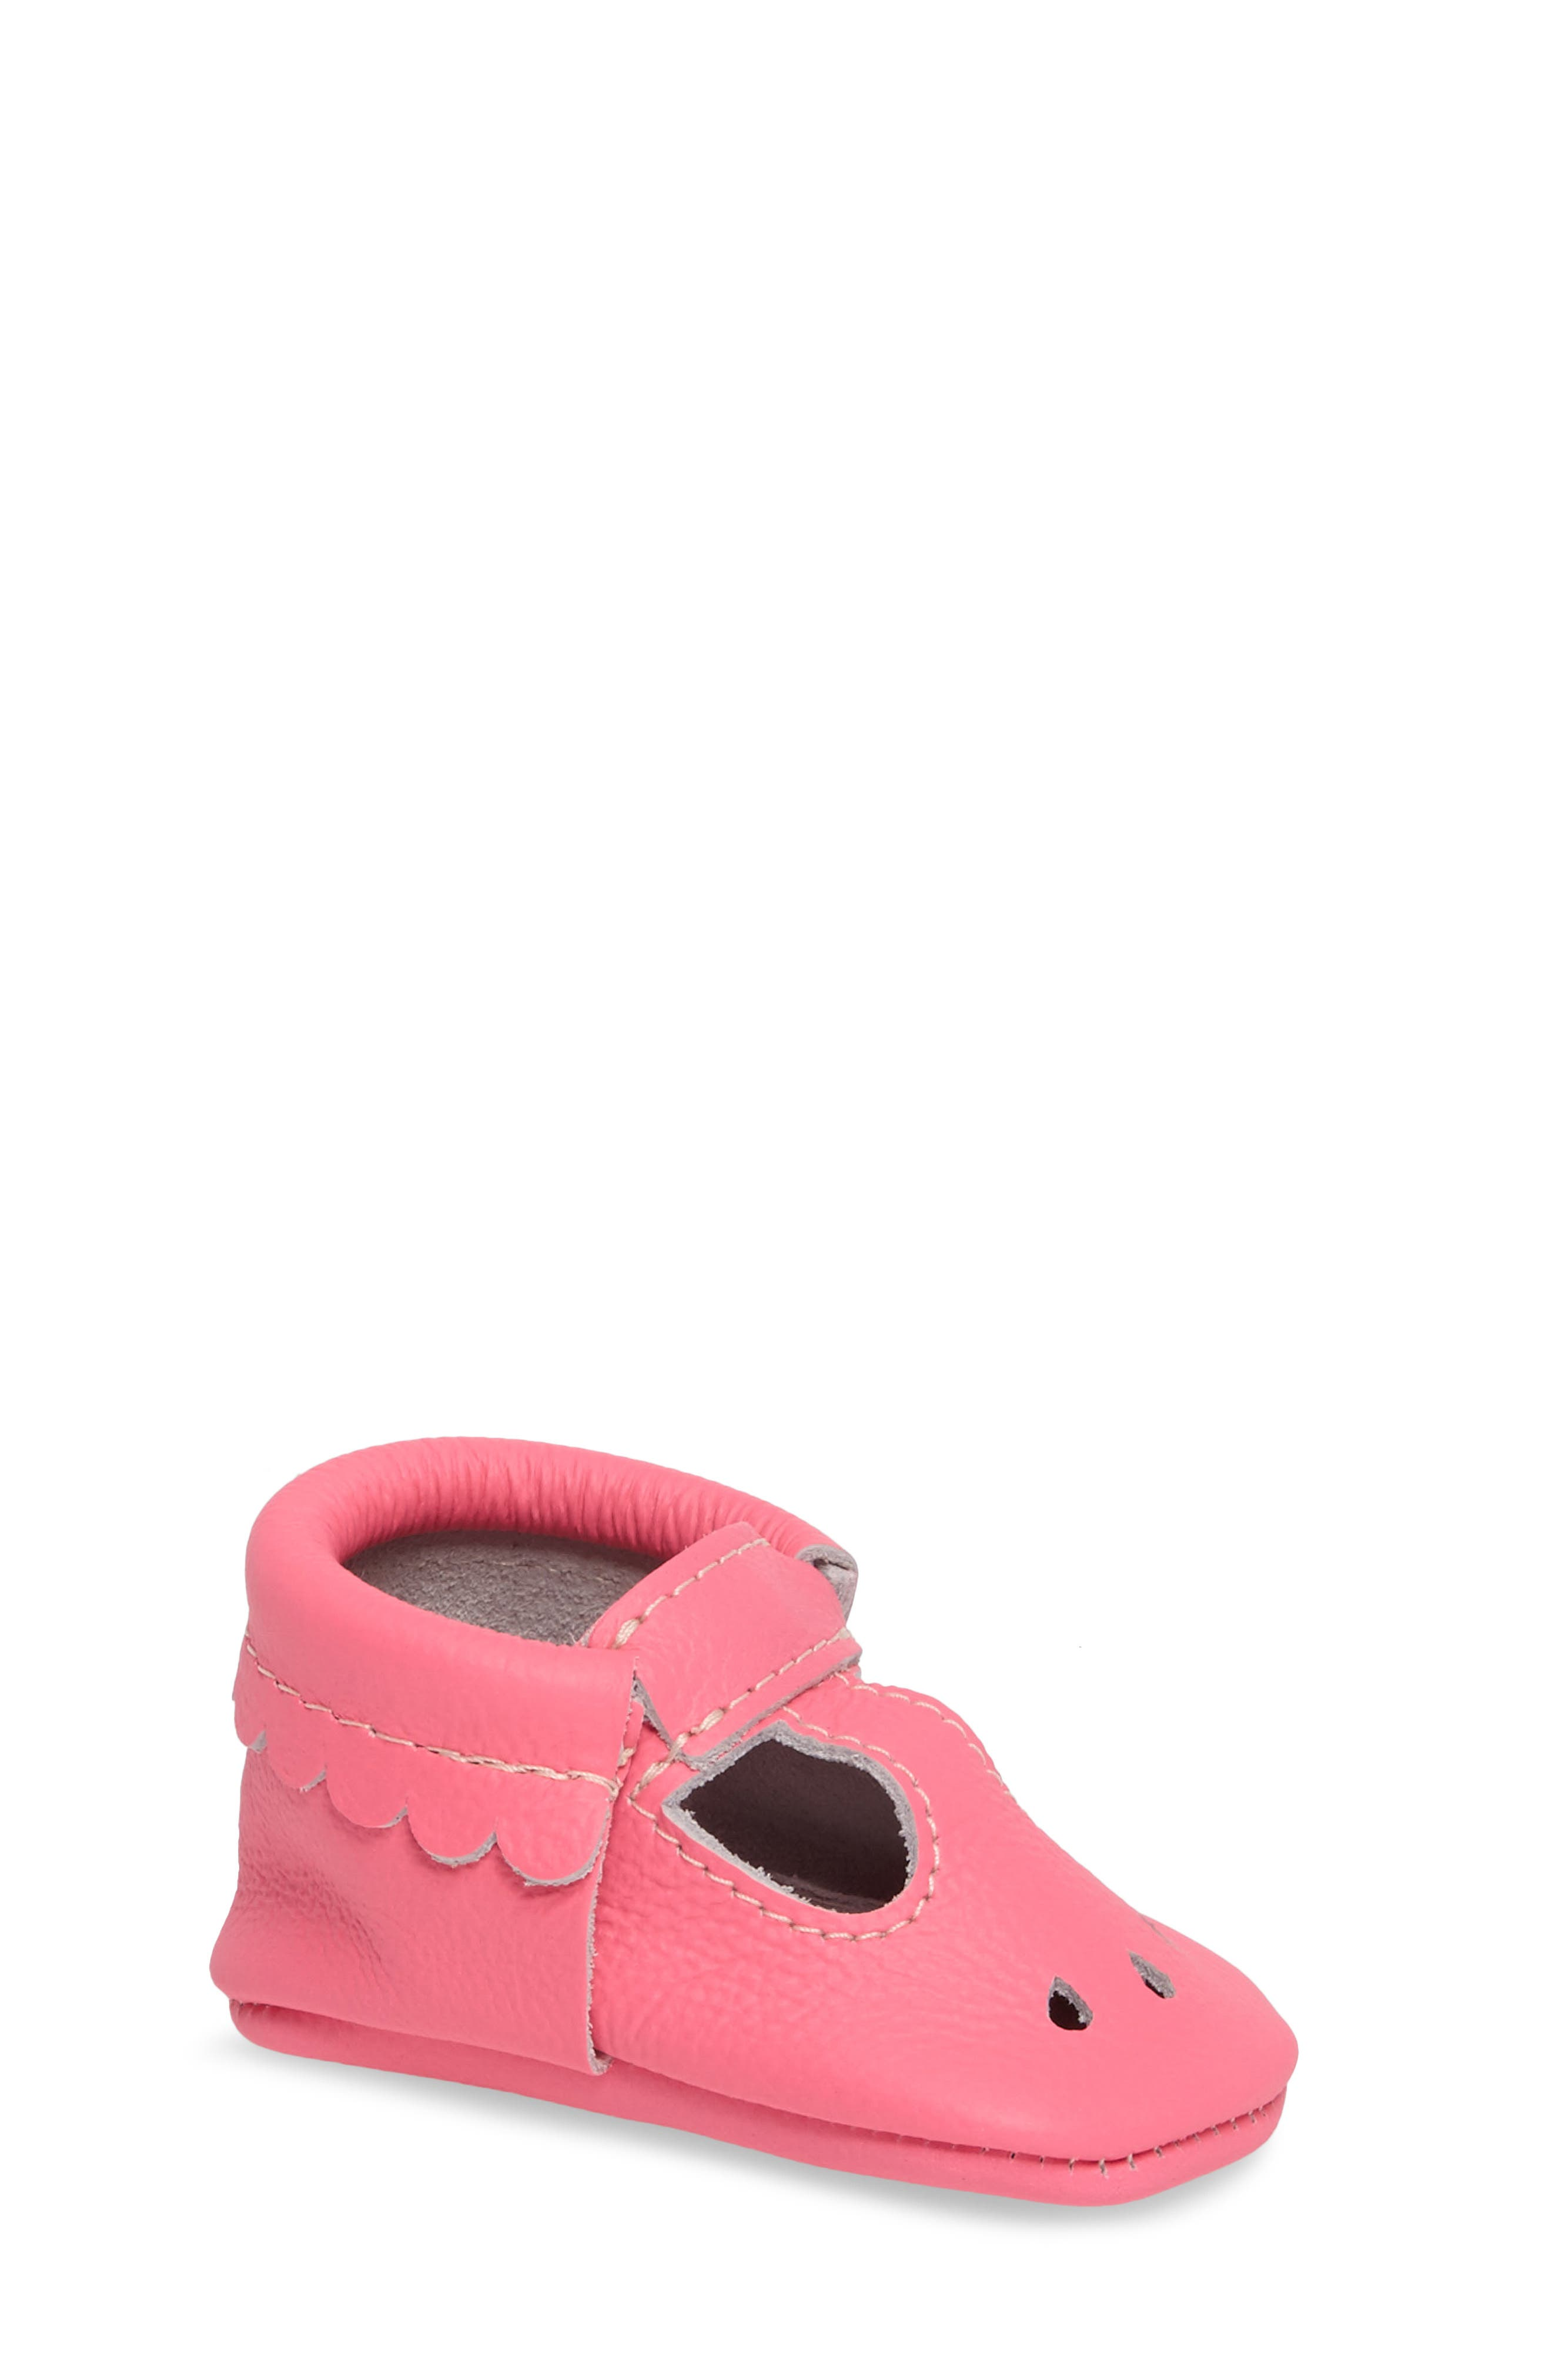 Perforated Mary Jane Moccasin,                         Main,                         color, Neon Pink Leather